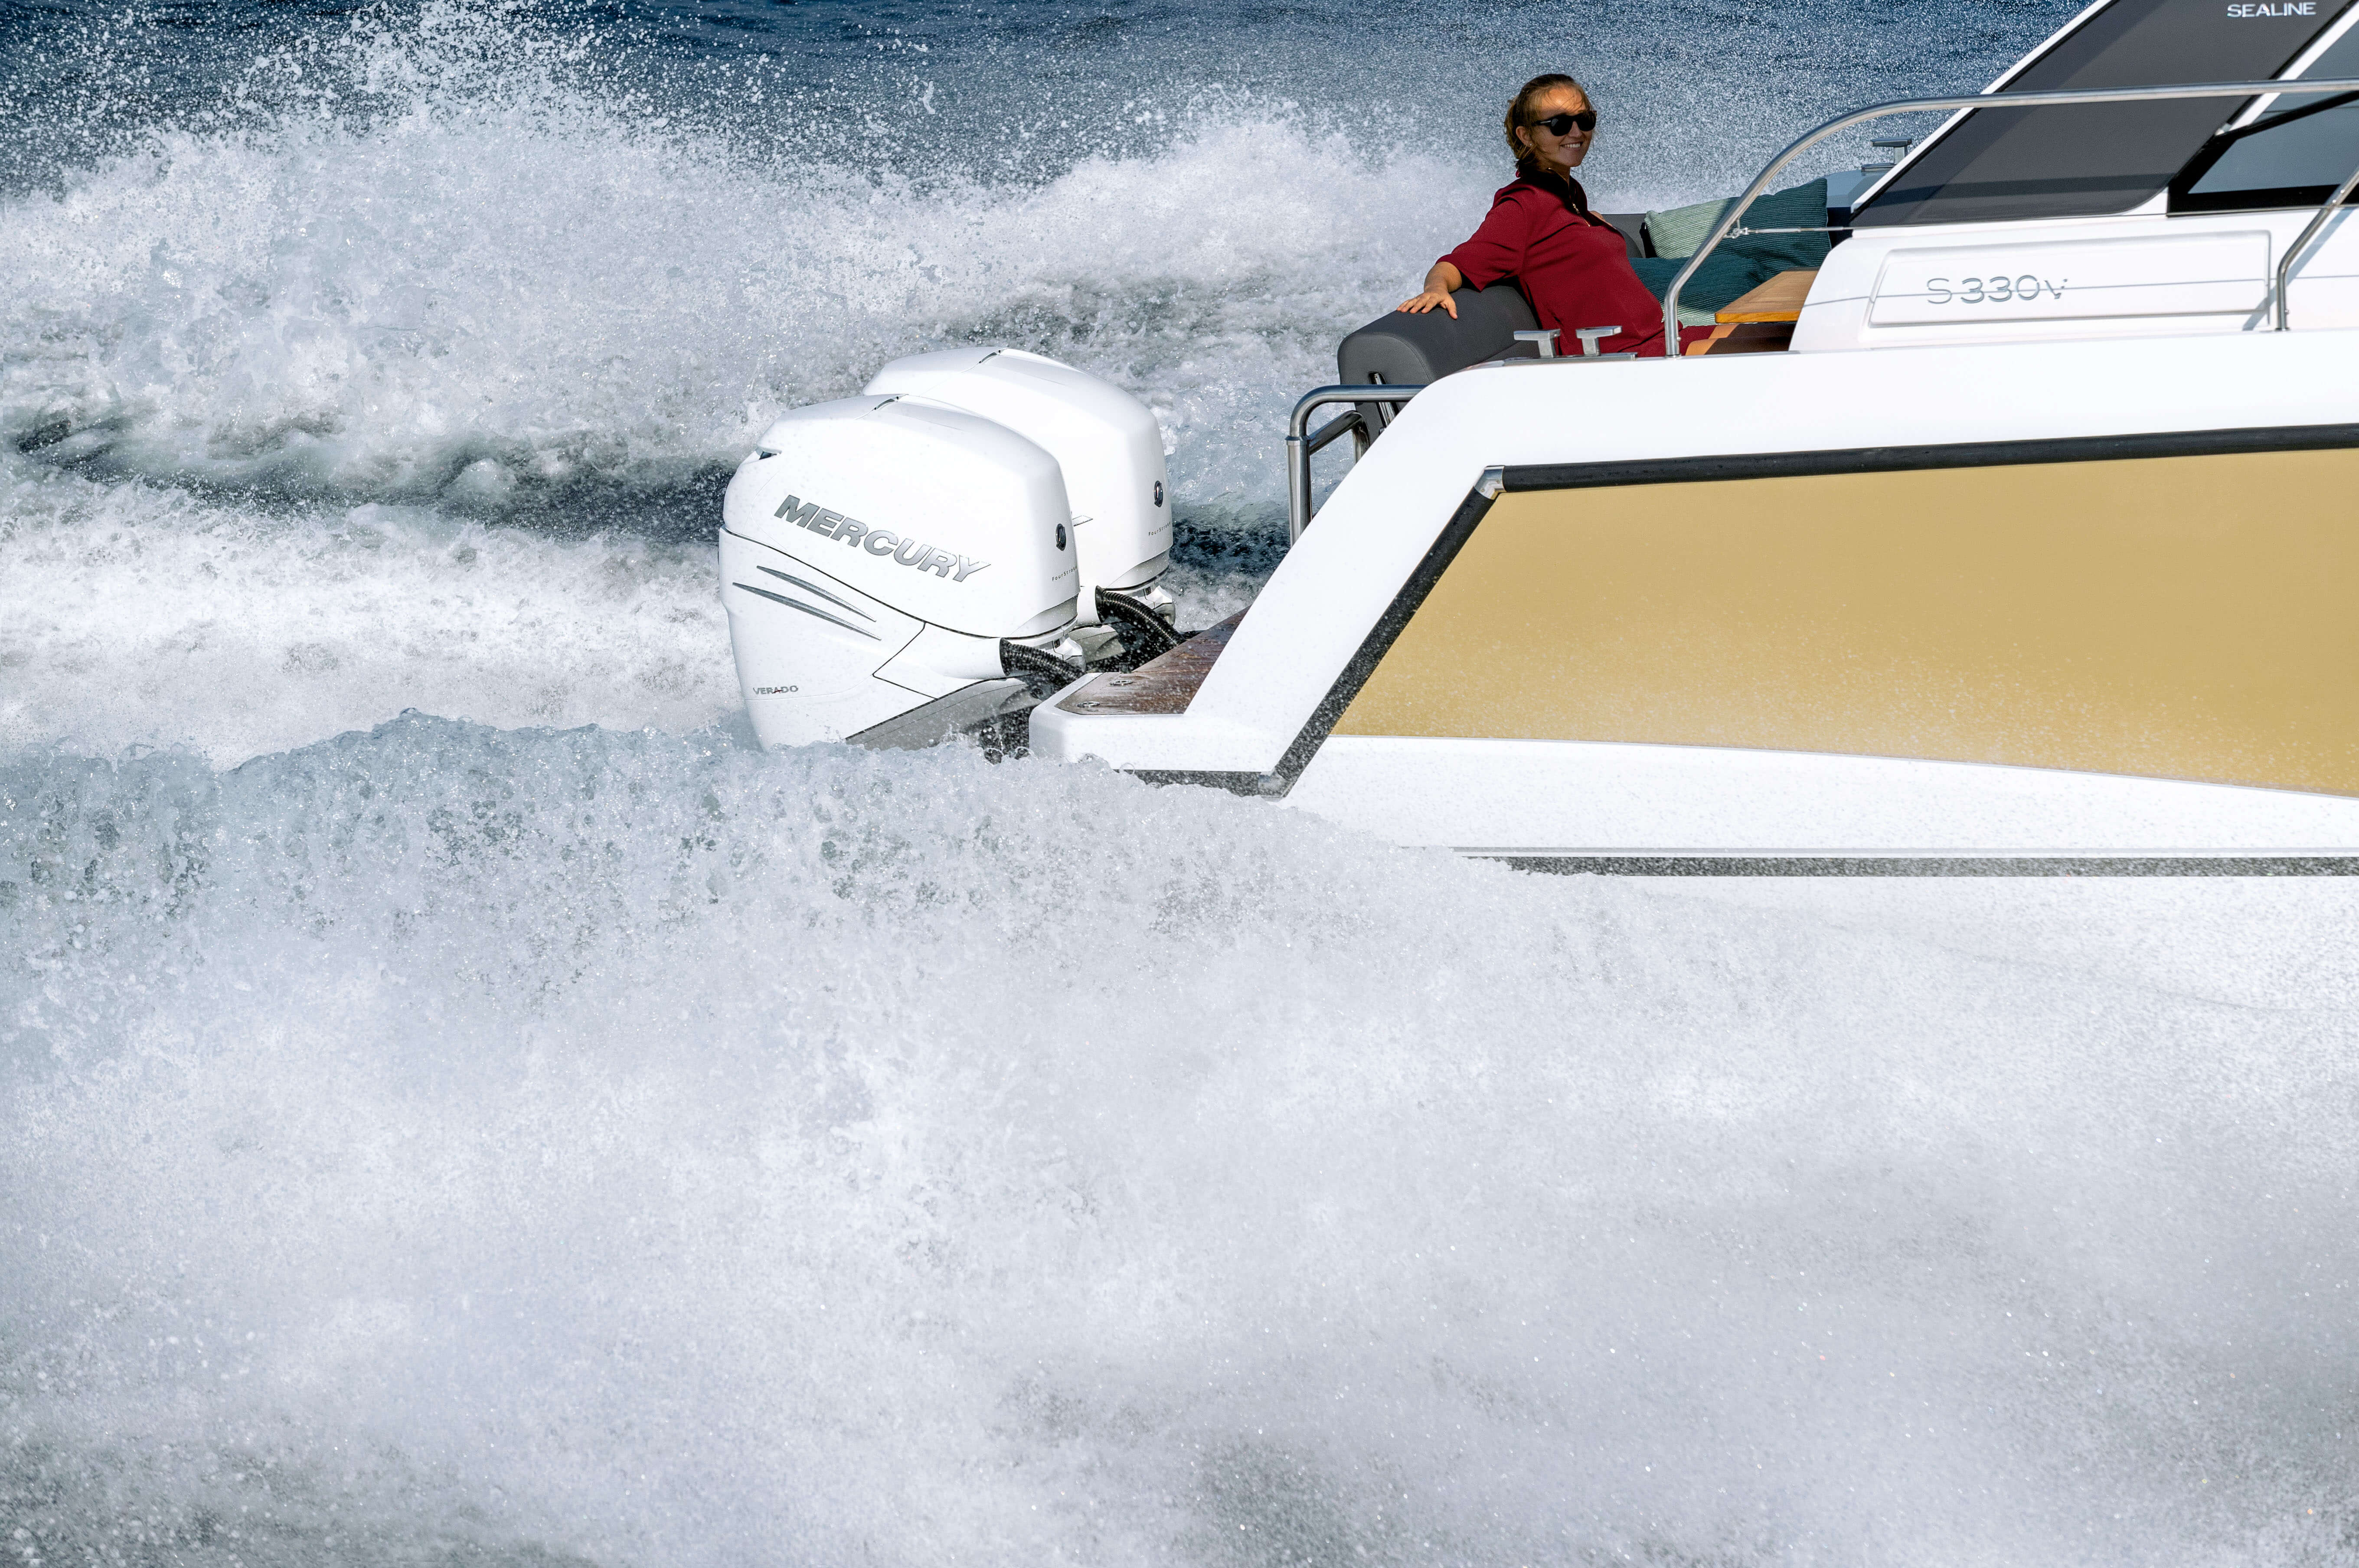 Sealine S330v exterior | The outboards' quiet operation ensures life on board to be a pleasure. | Sealine